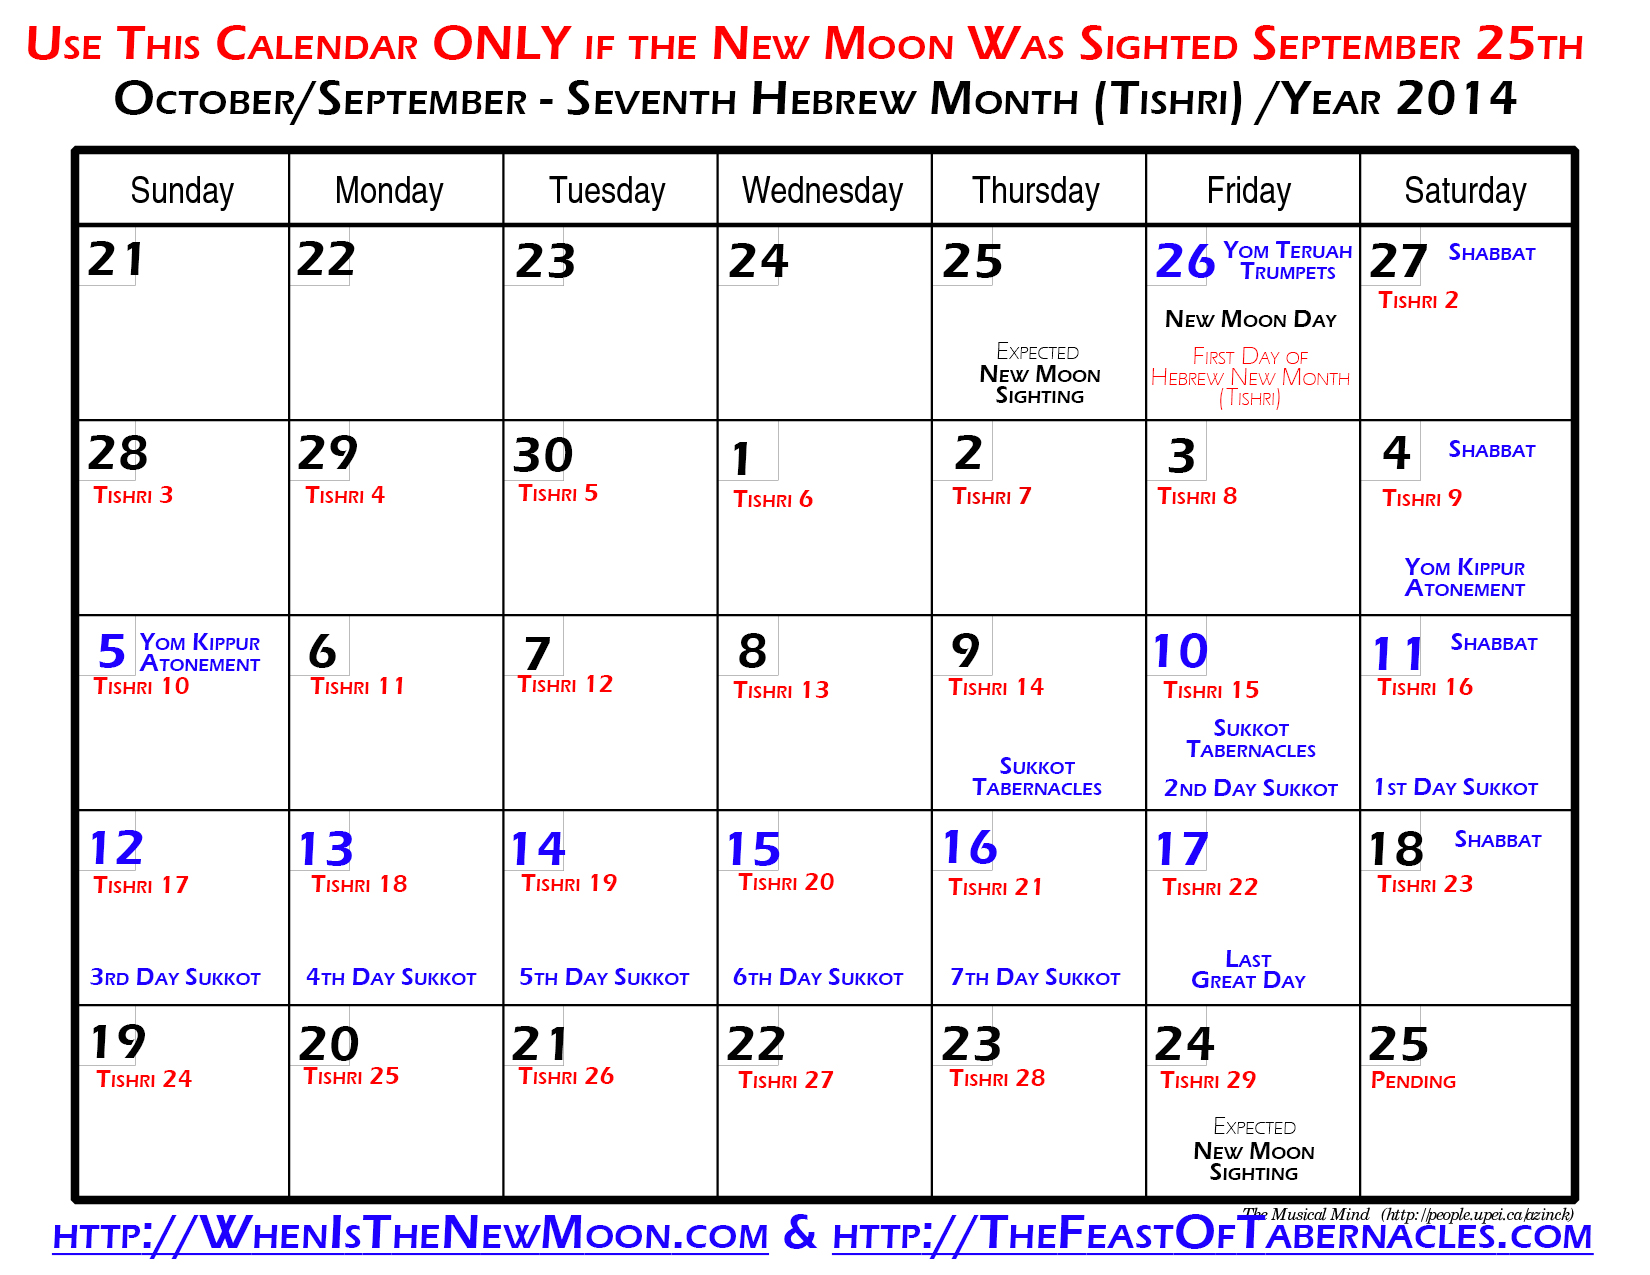 NASA New Moon Sighting September 2014 - Pics about space